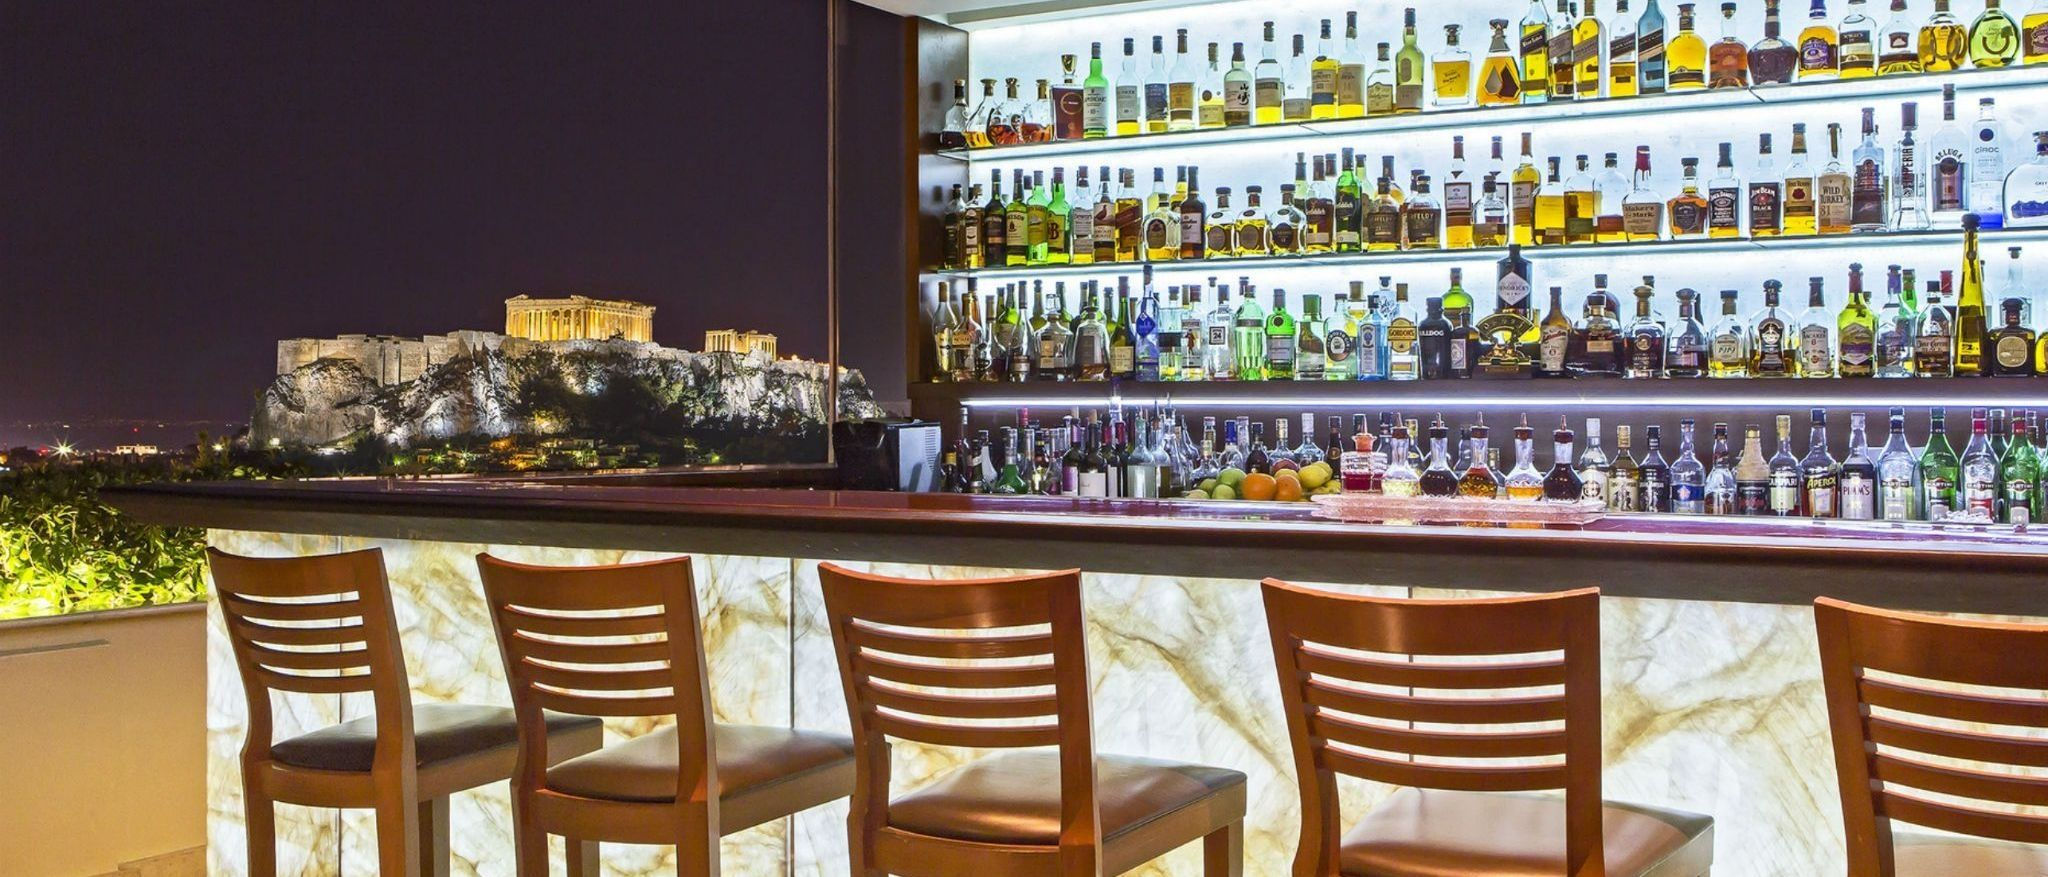 "=""GB-Roof-Garden-Bar-at-the-Hotel-Grande-Bretagne-Athens""/"